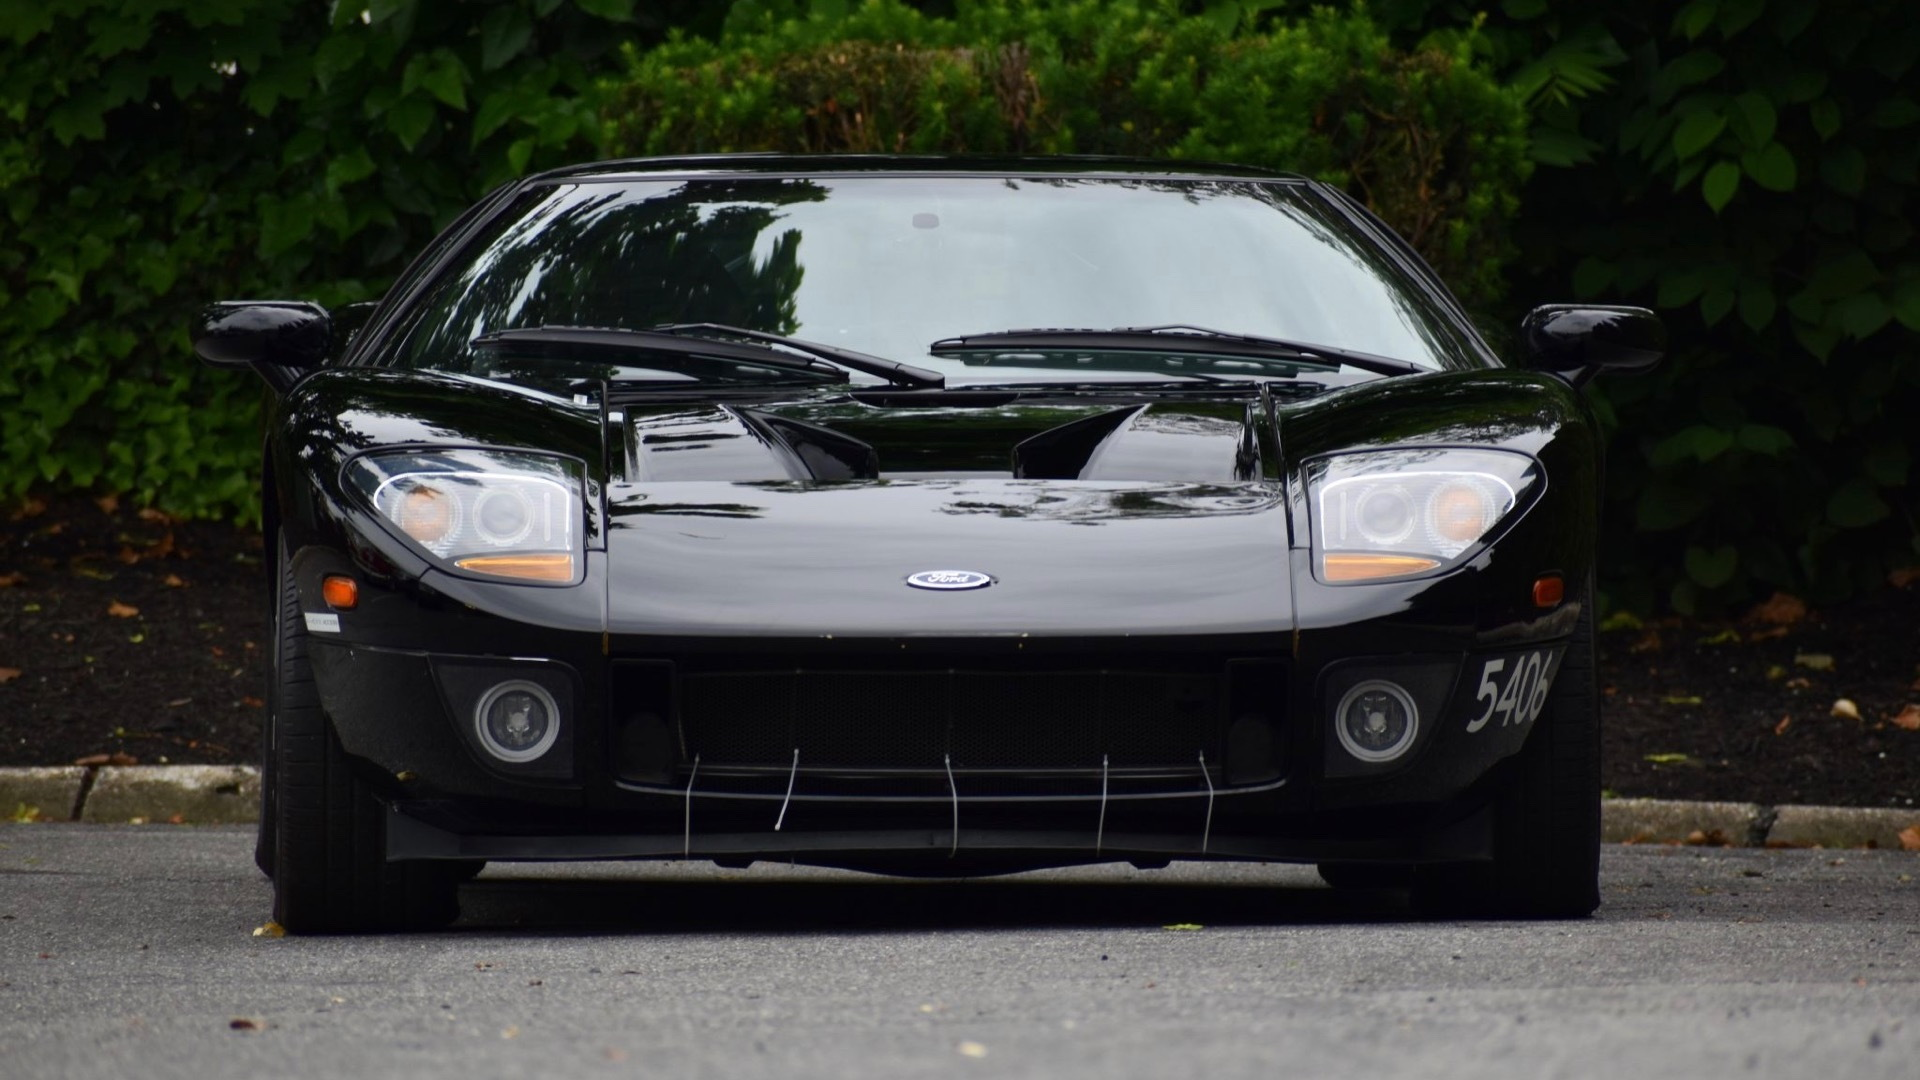 2004 Ford GT Confirmation Prototype 1 (Photo by Bring a Trailer)